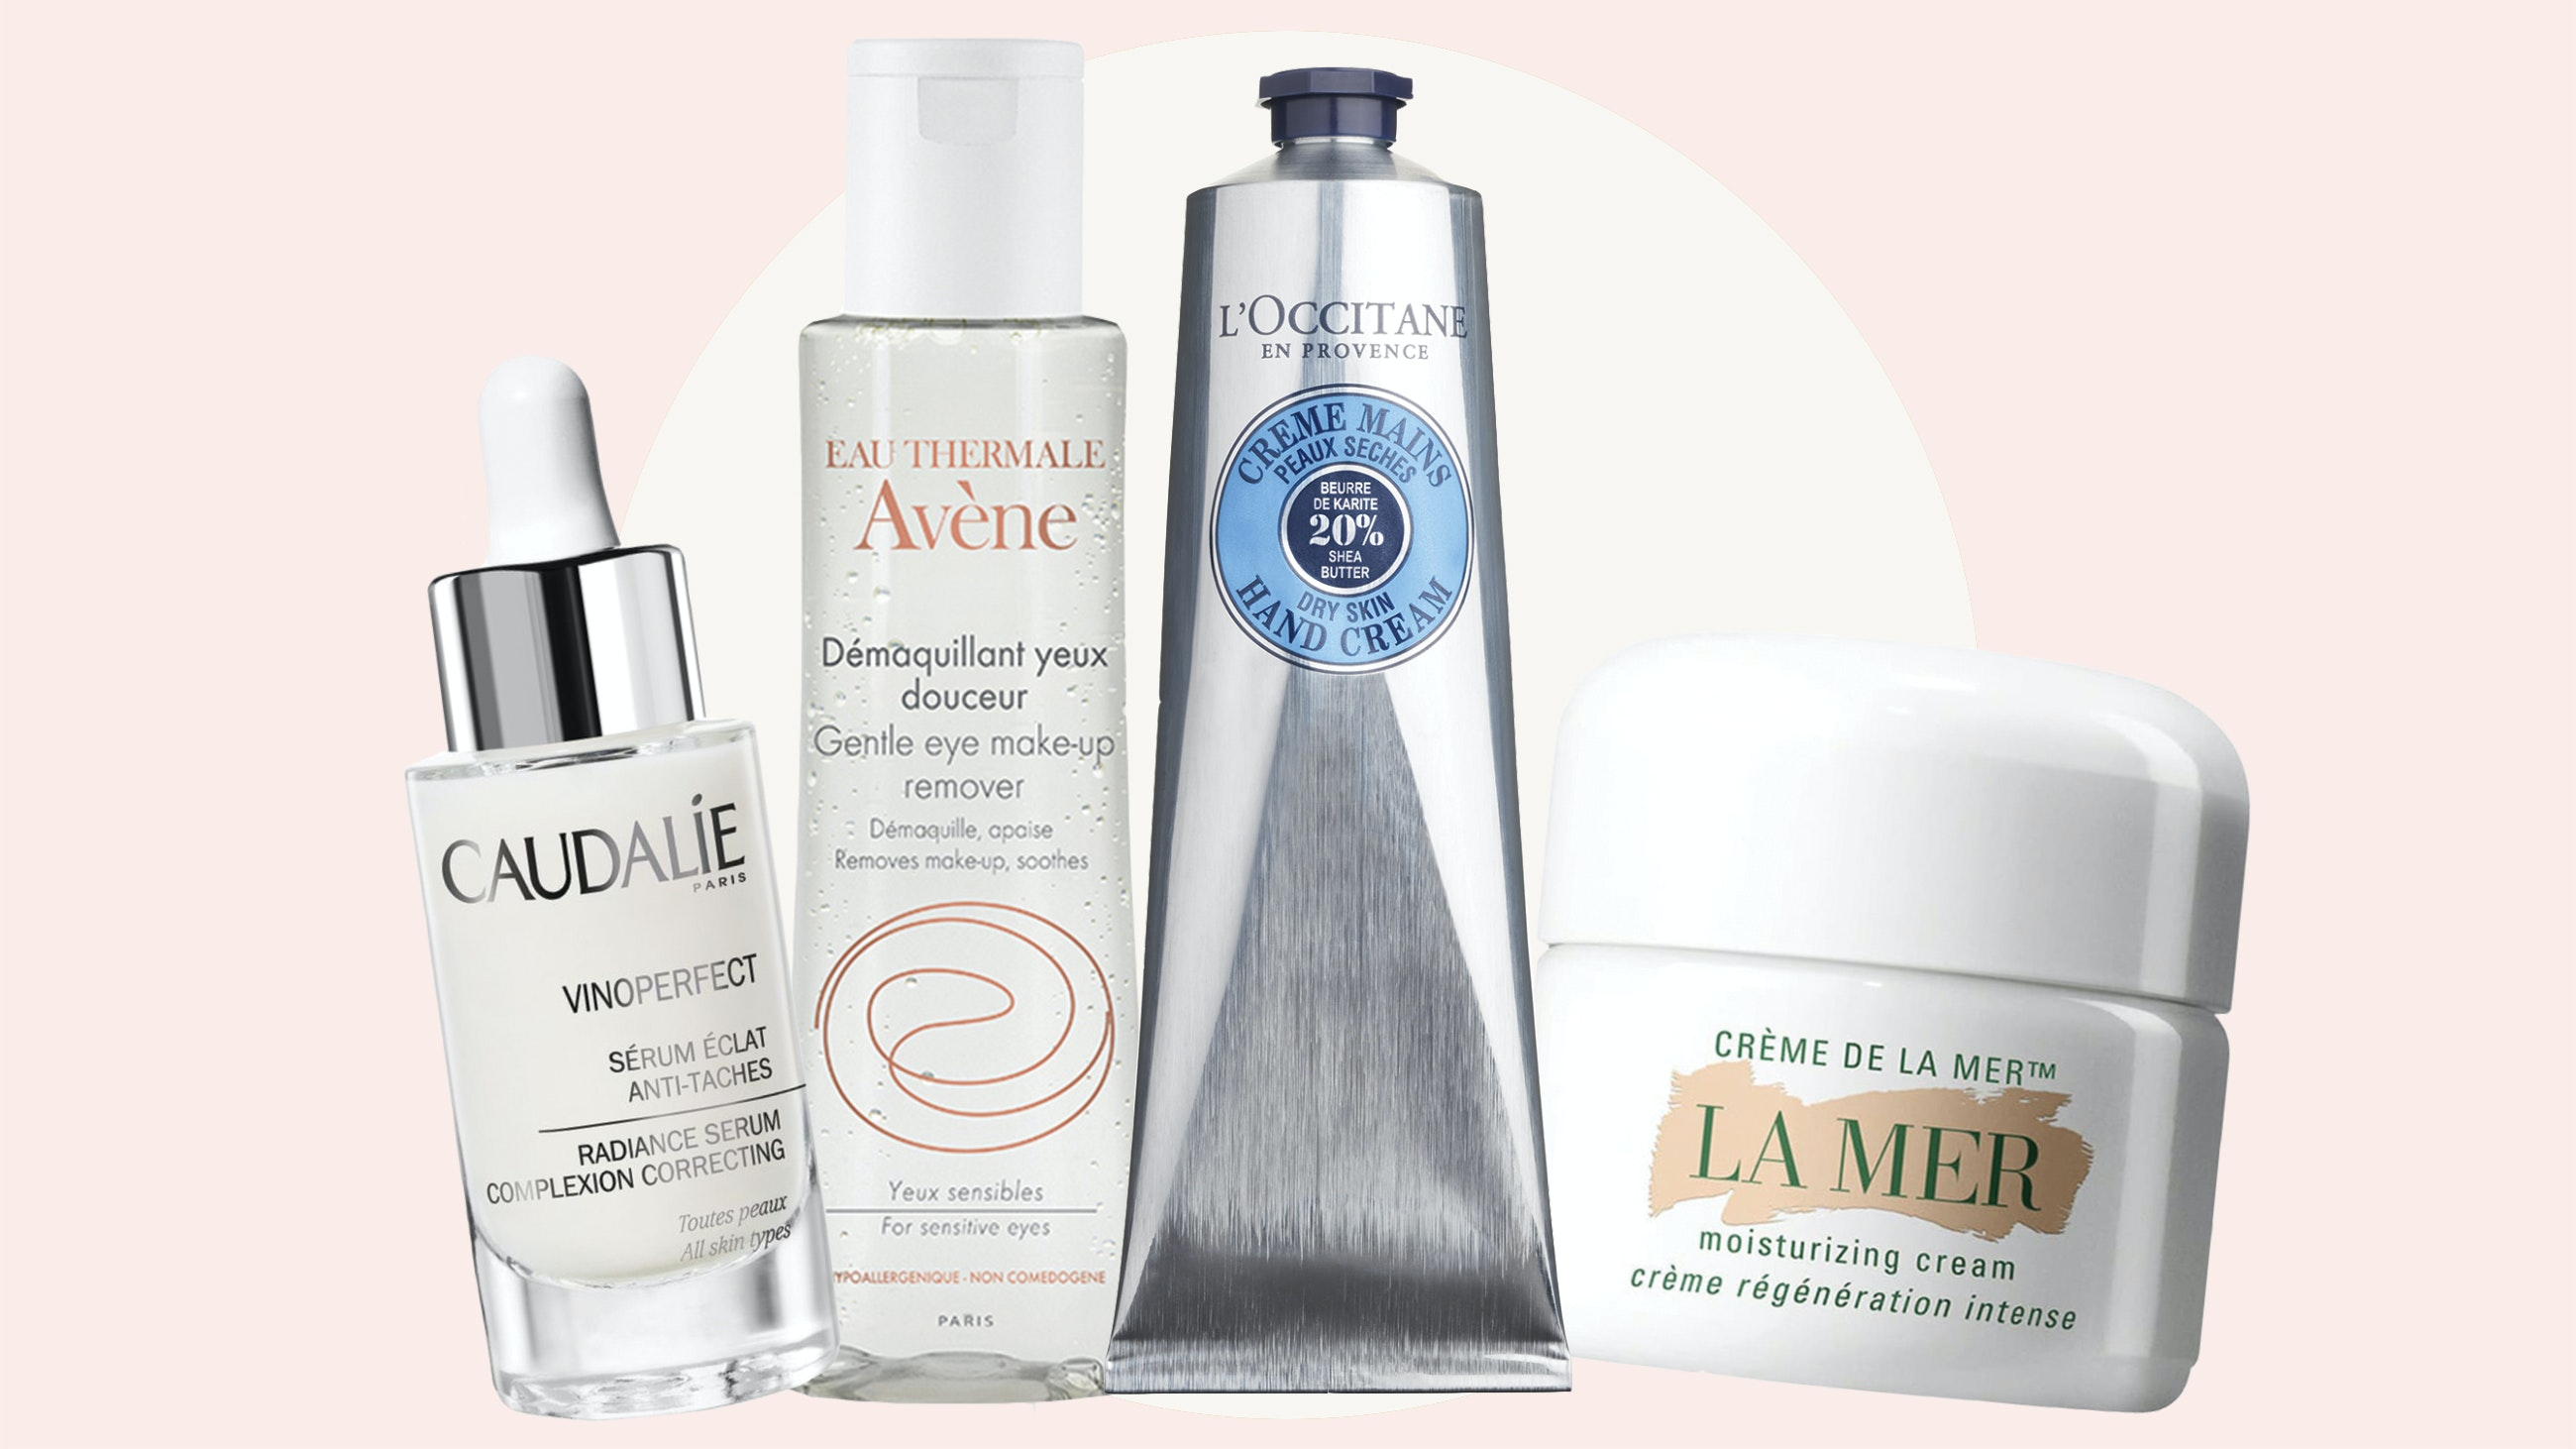 10 Cult French Beauty Products That Are Worth the Hype, According to Dermatologists